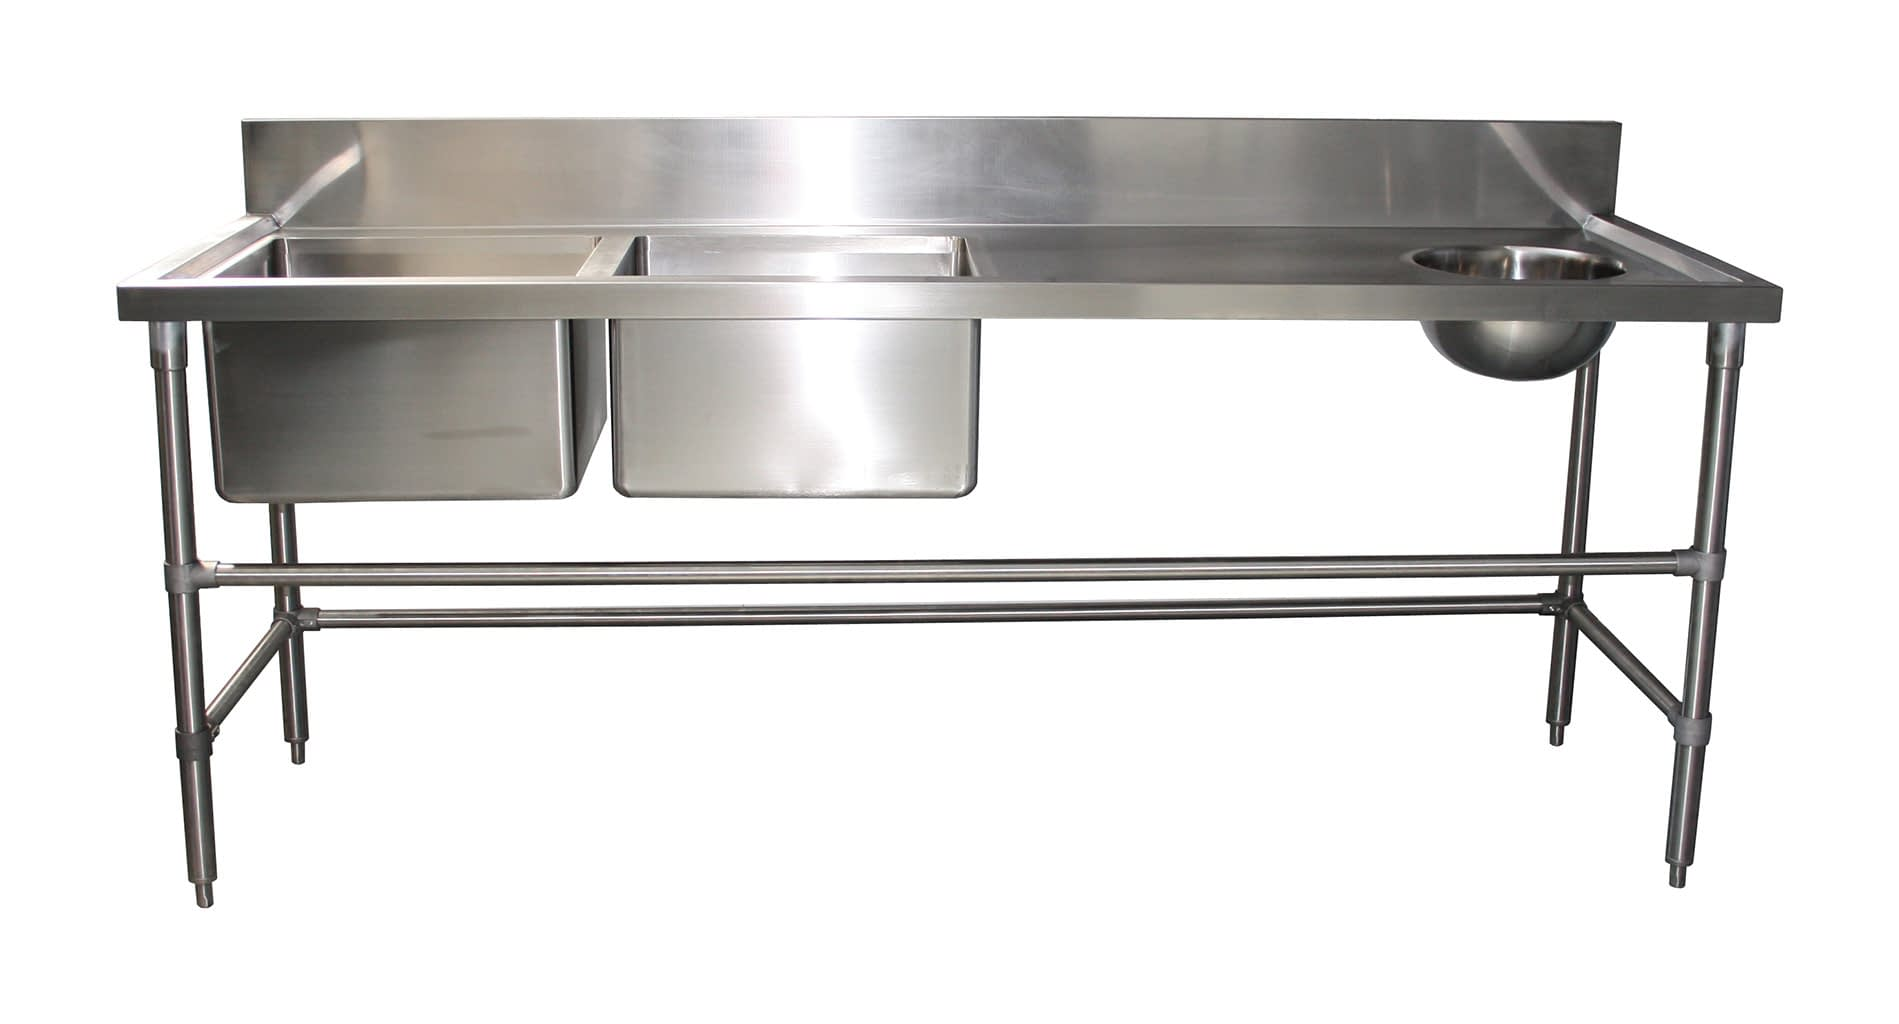 Double Bowl Stainless Kitchen Sink With Handbasin, 2200 x 700 x 900mm high